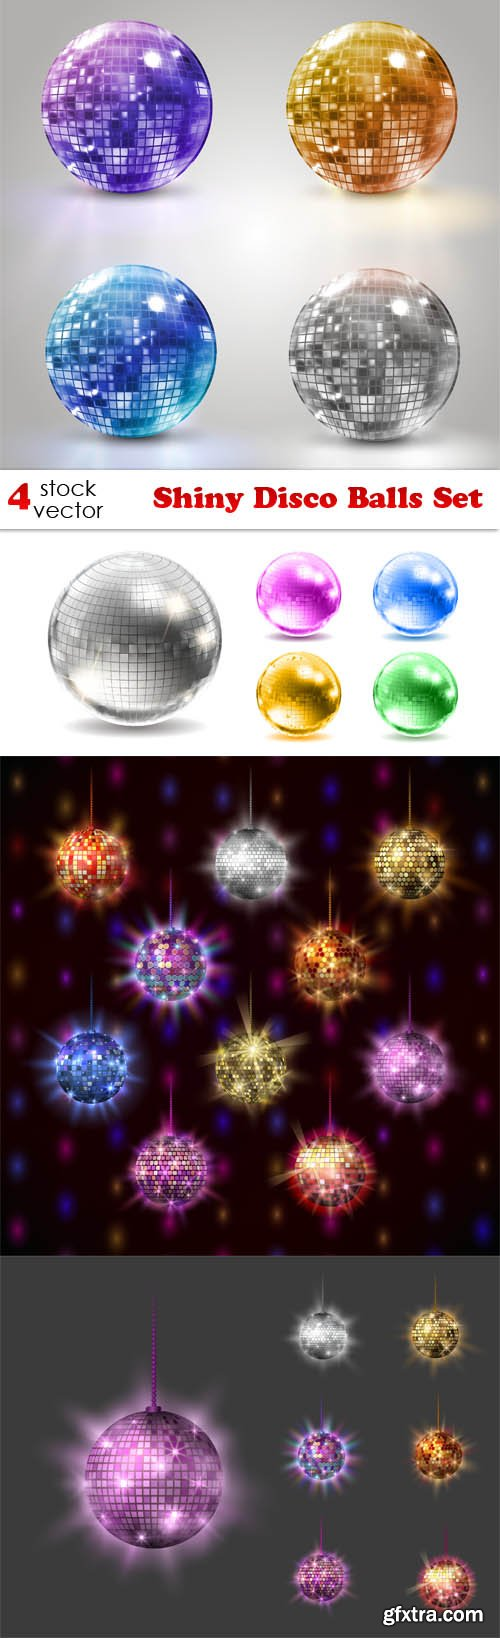 Vectors - Shiny Disco Balls Set